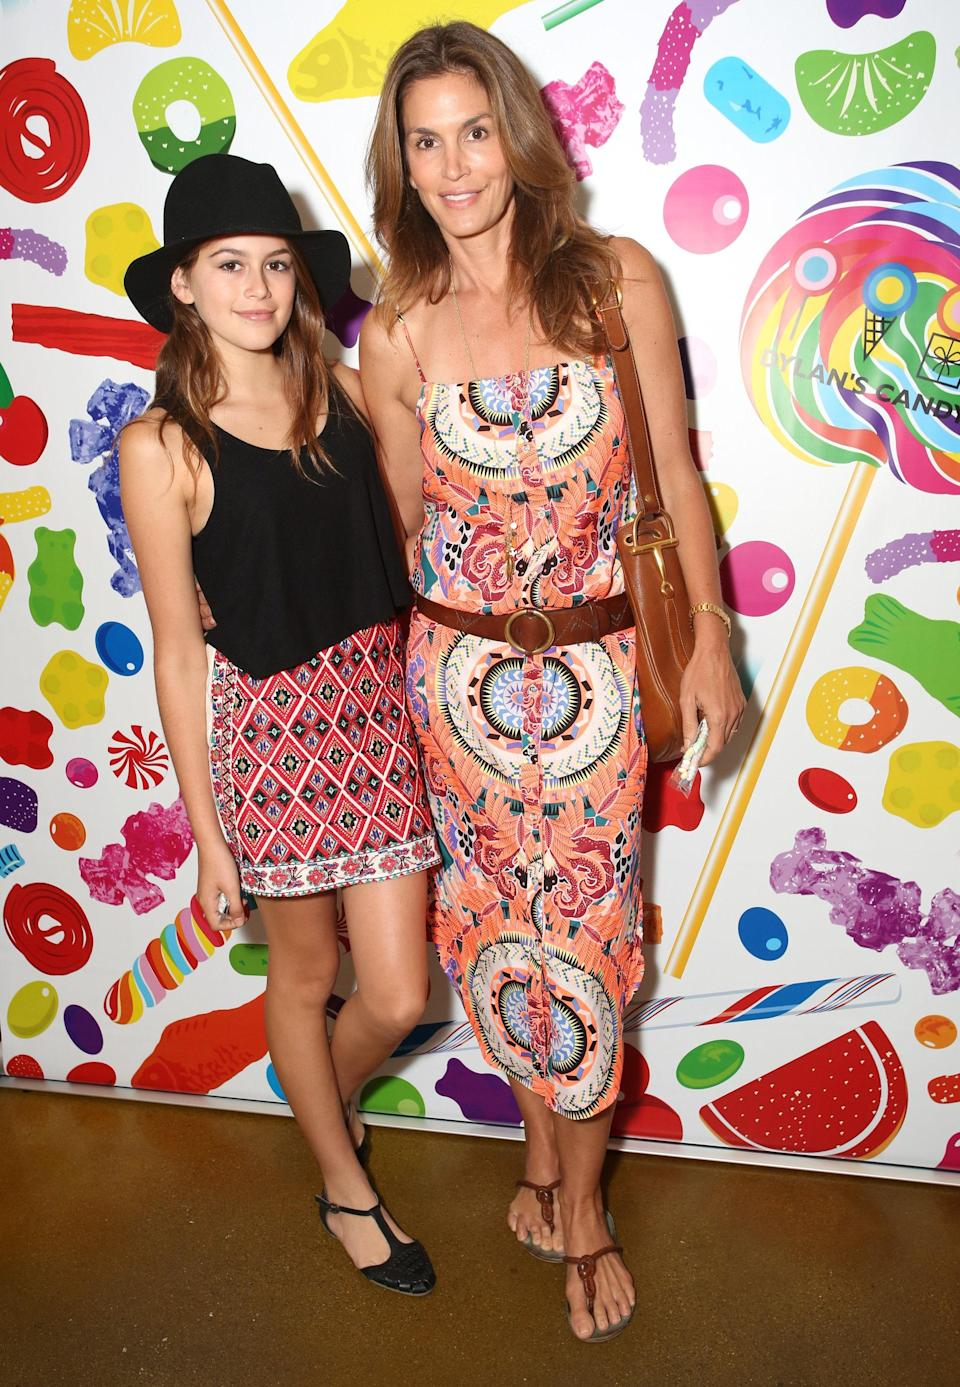 For a Dylan's Candy Bar event, Kaia and her supermodel mom both opted for colorful prints that fit the playful mood and nail that whole mother-daughter style thing without looking overly matchy-matchy.